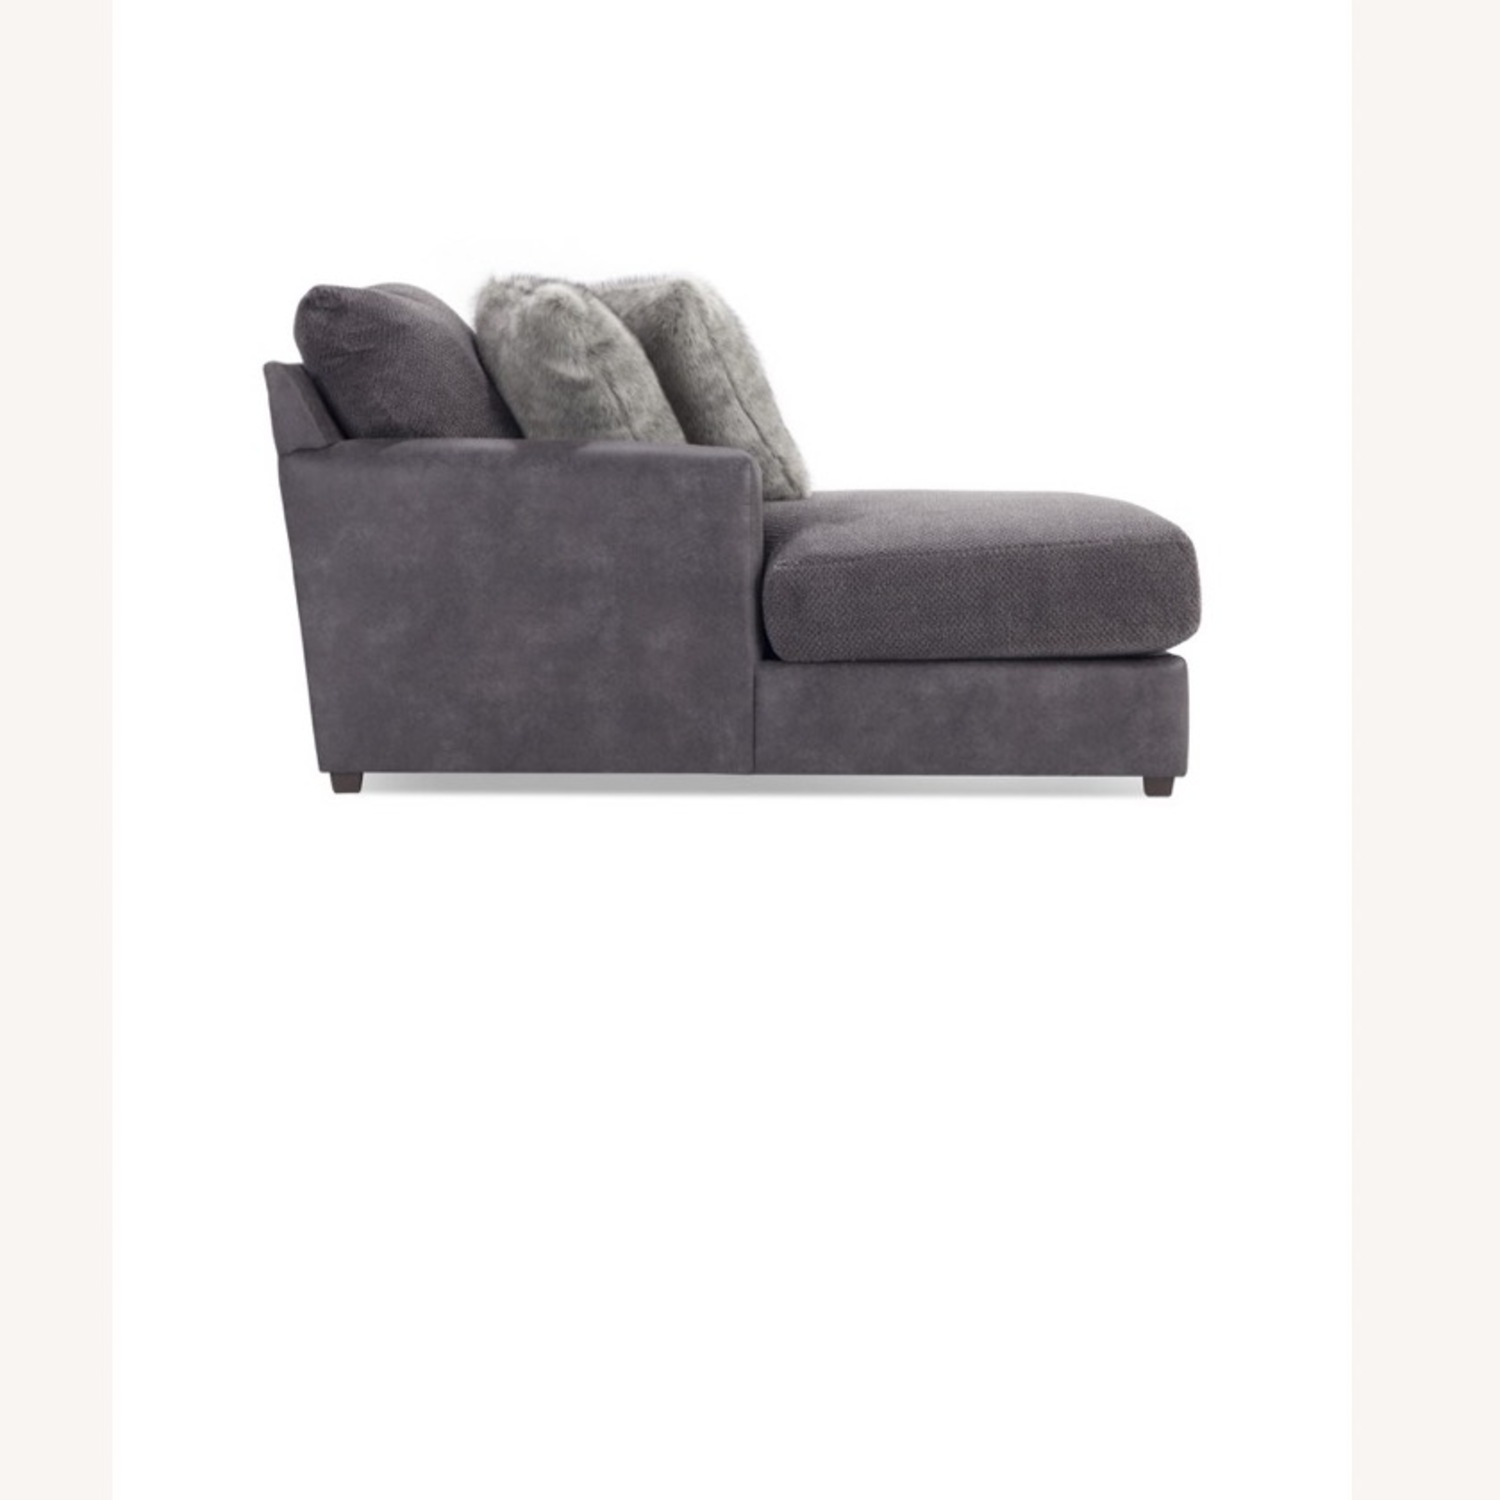 Bob's Discount Grey Chaise Lounge - image-2